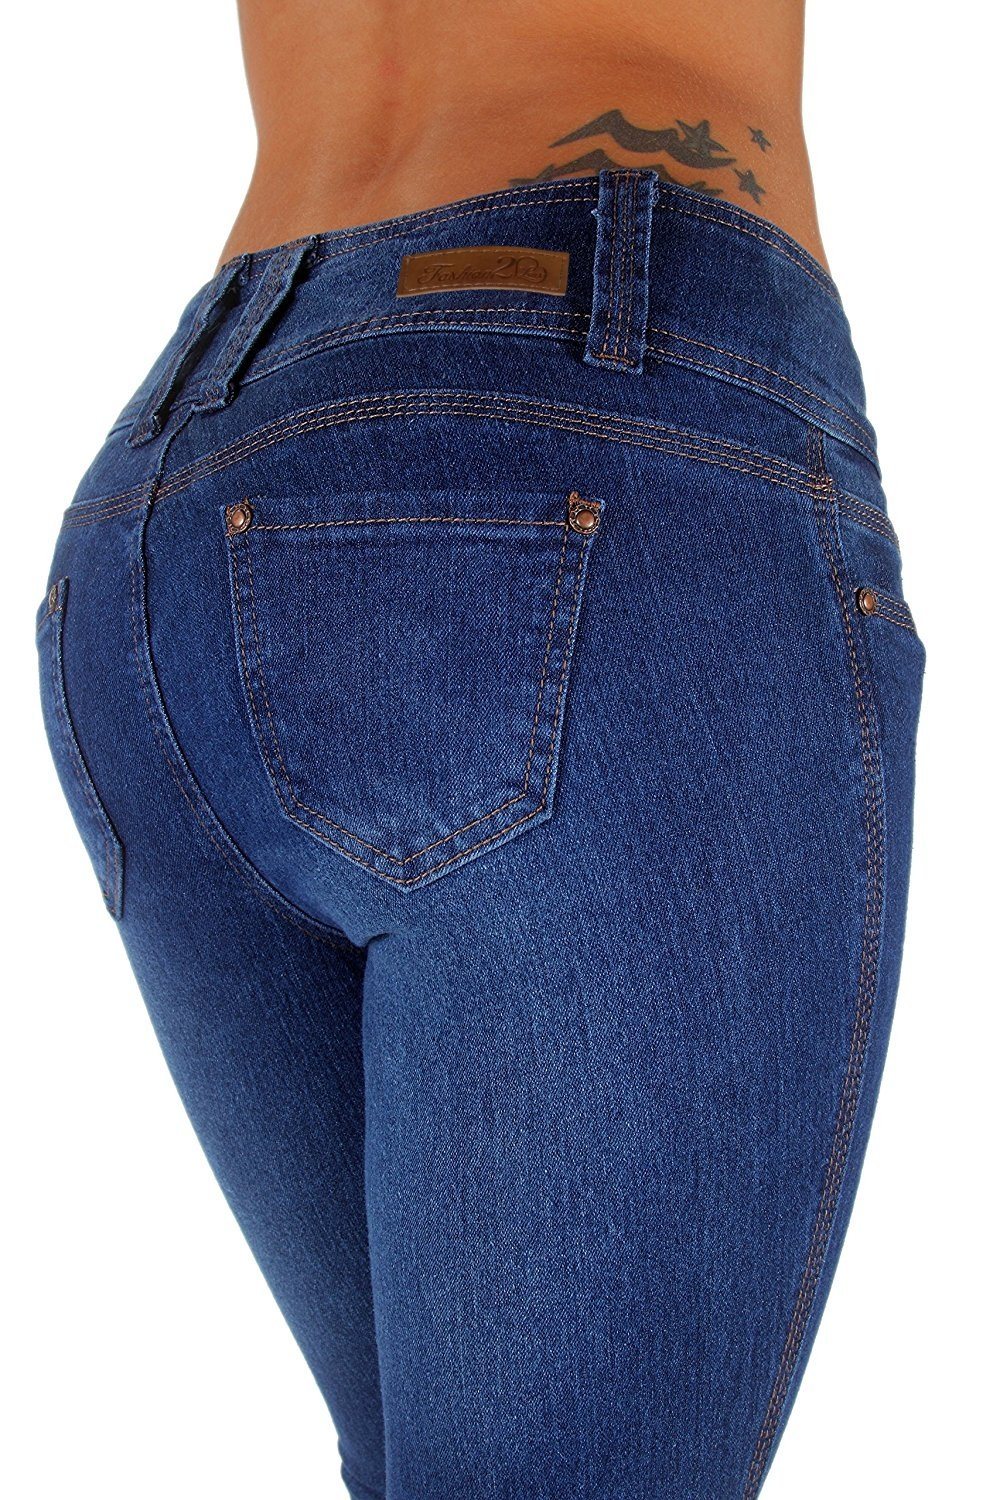 Style N231P – Plus Size, Mid Waist, Butt Lifting, Skinny Leg Jeans in Dark Blue Size 22